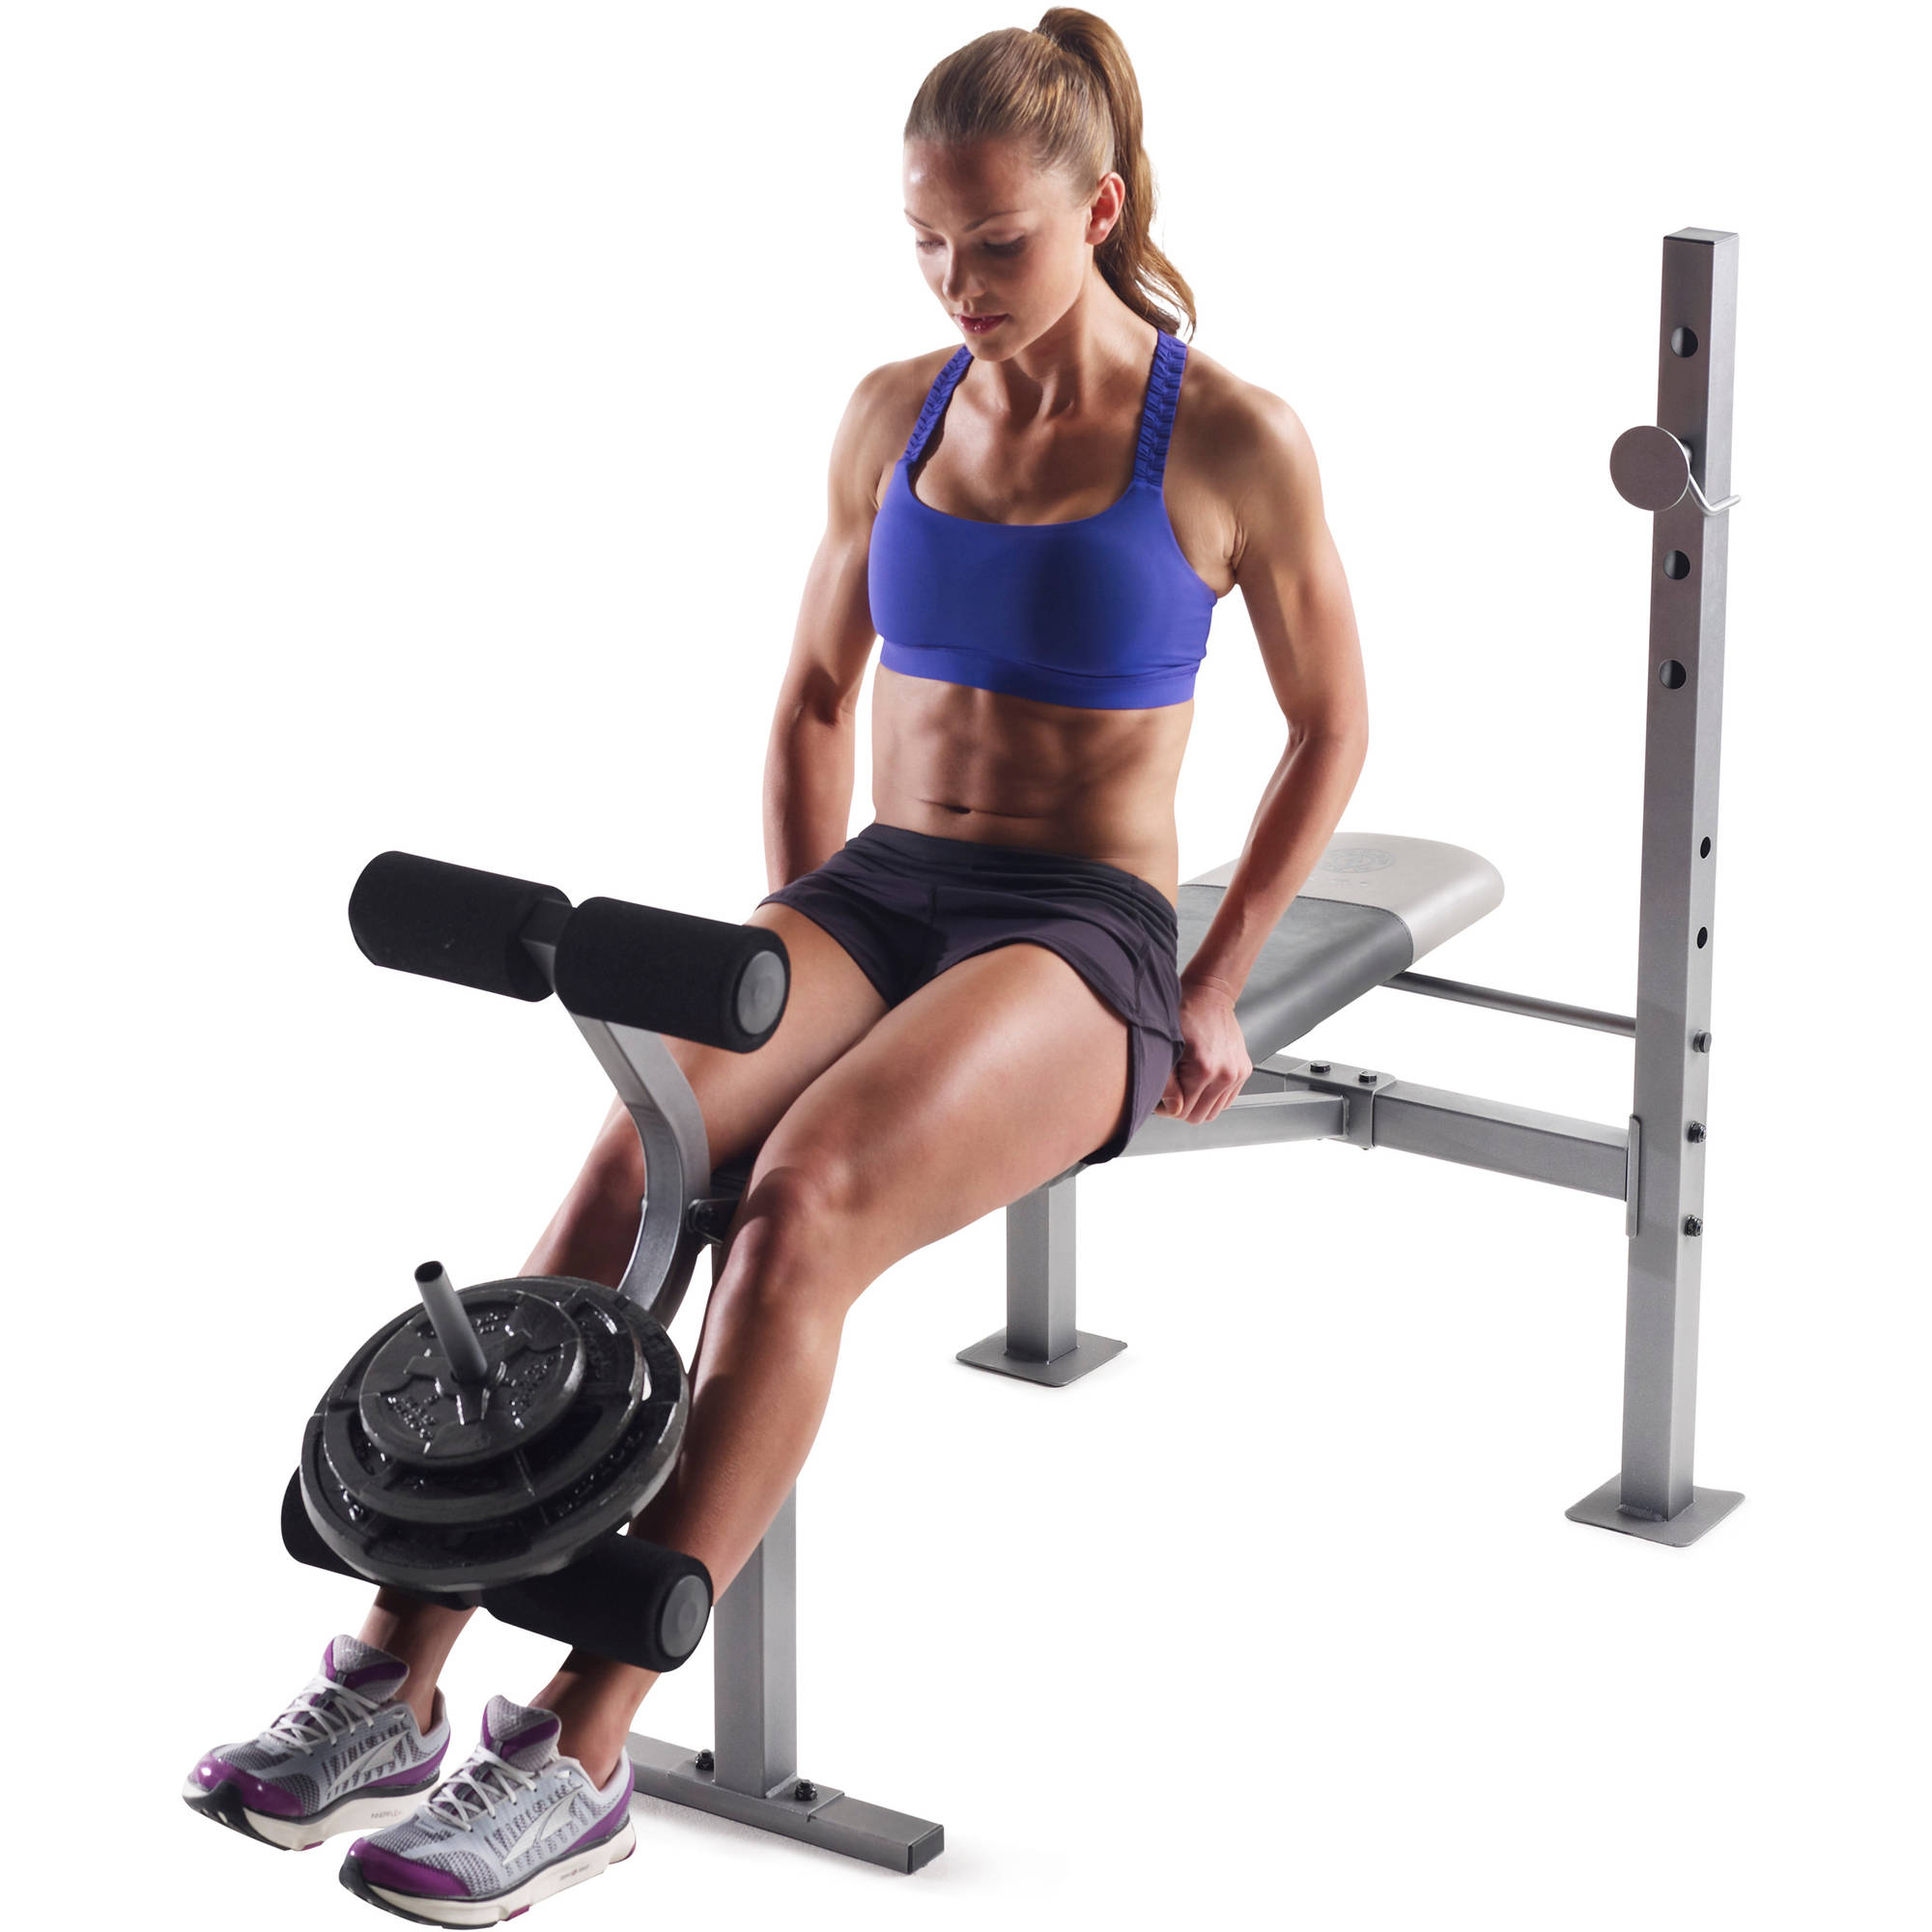 lifting workout bcp weight gym barbell itm and ez set exercise bench dumbbell curl bar weights